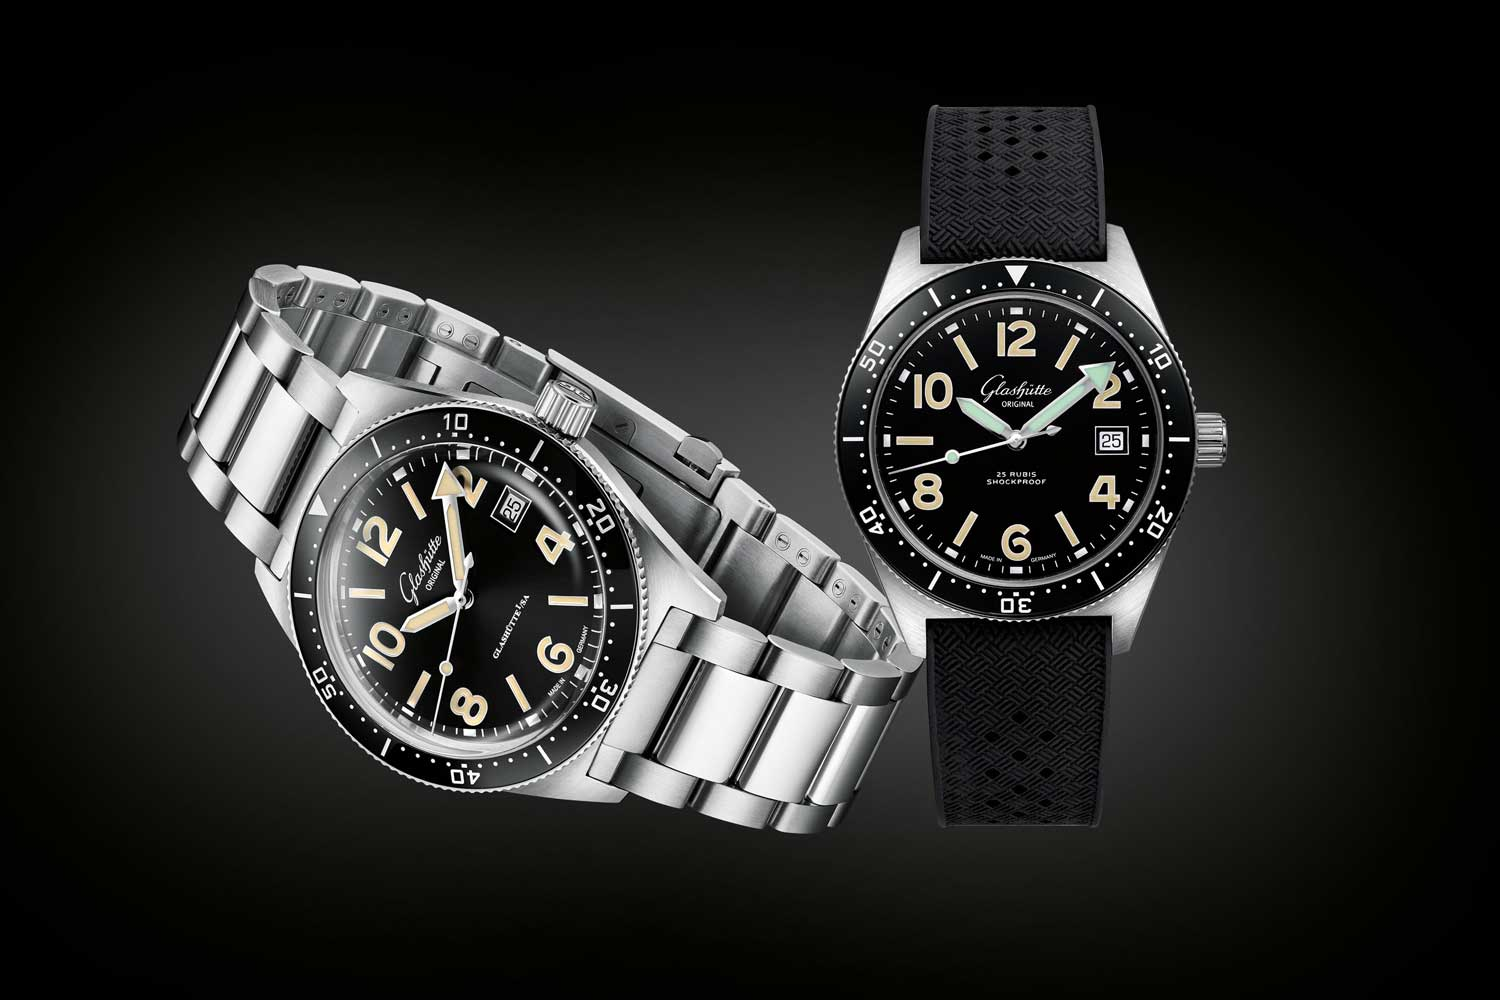 From left: the SeaQ; and SeaQ 1969 – Limited to 69 pieces worldwide